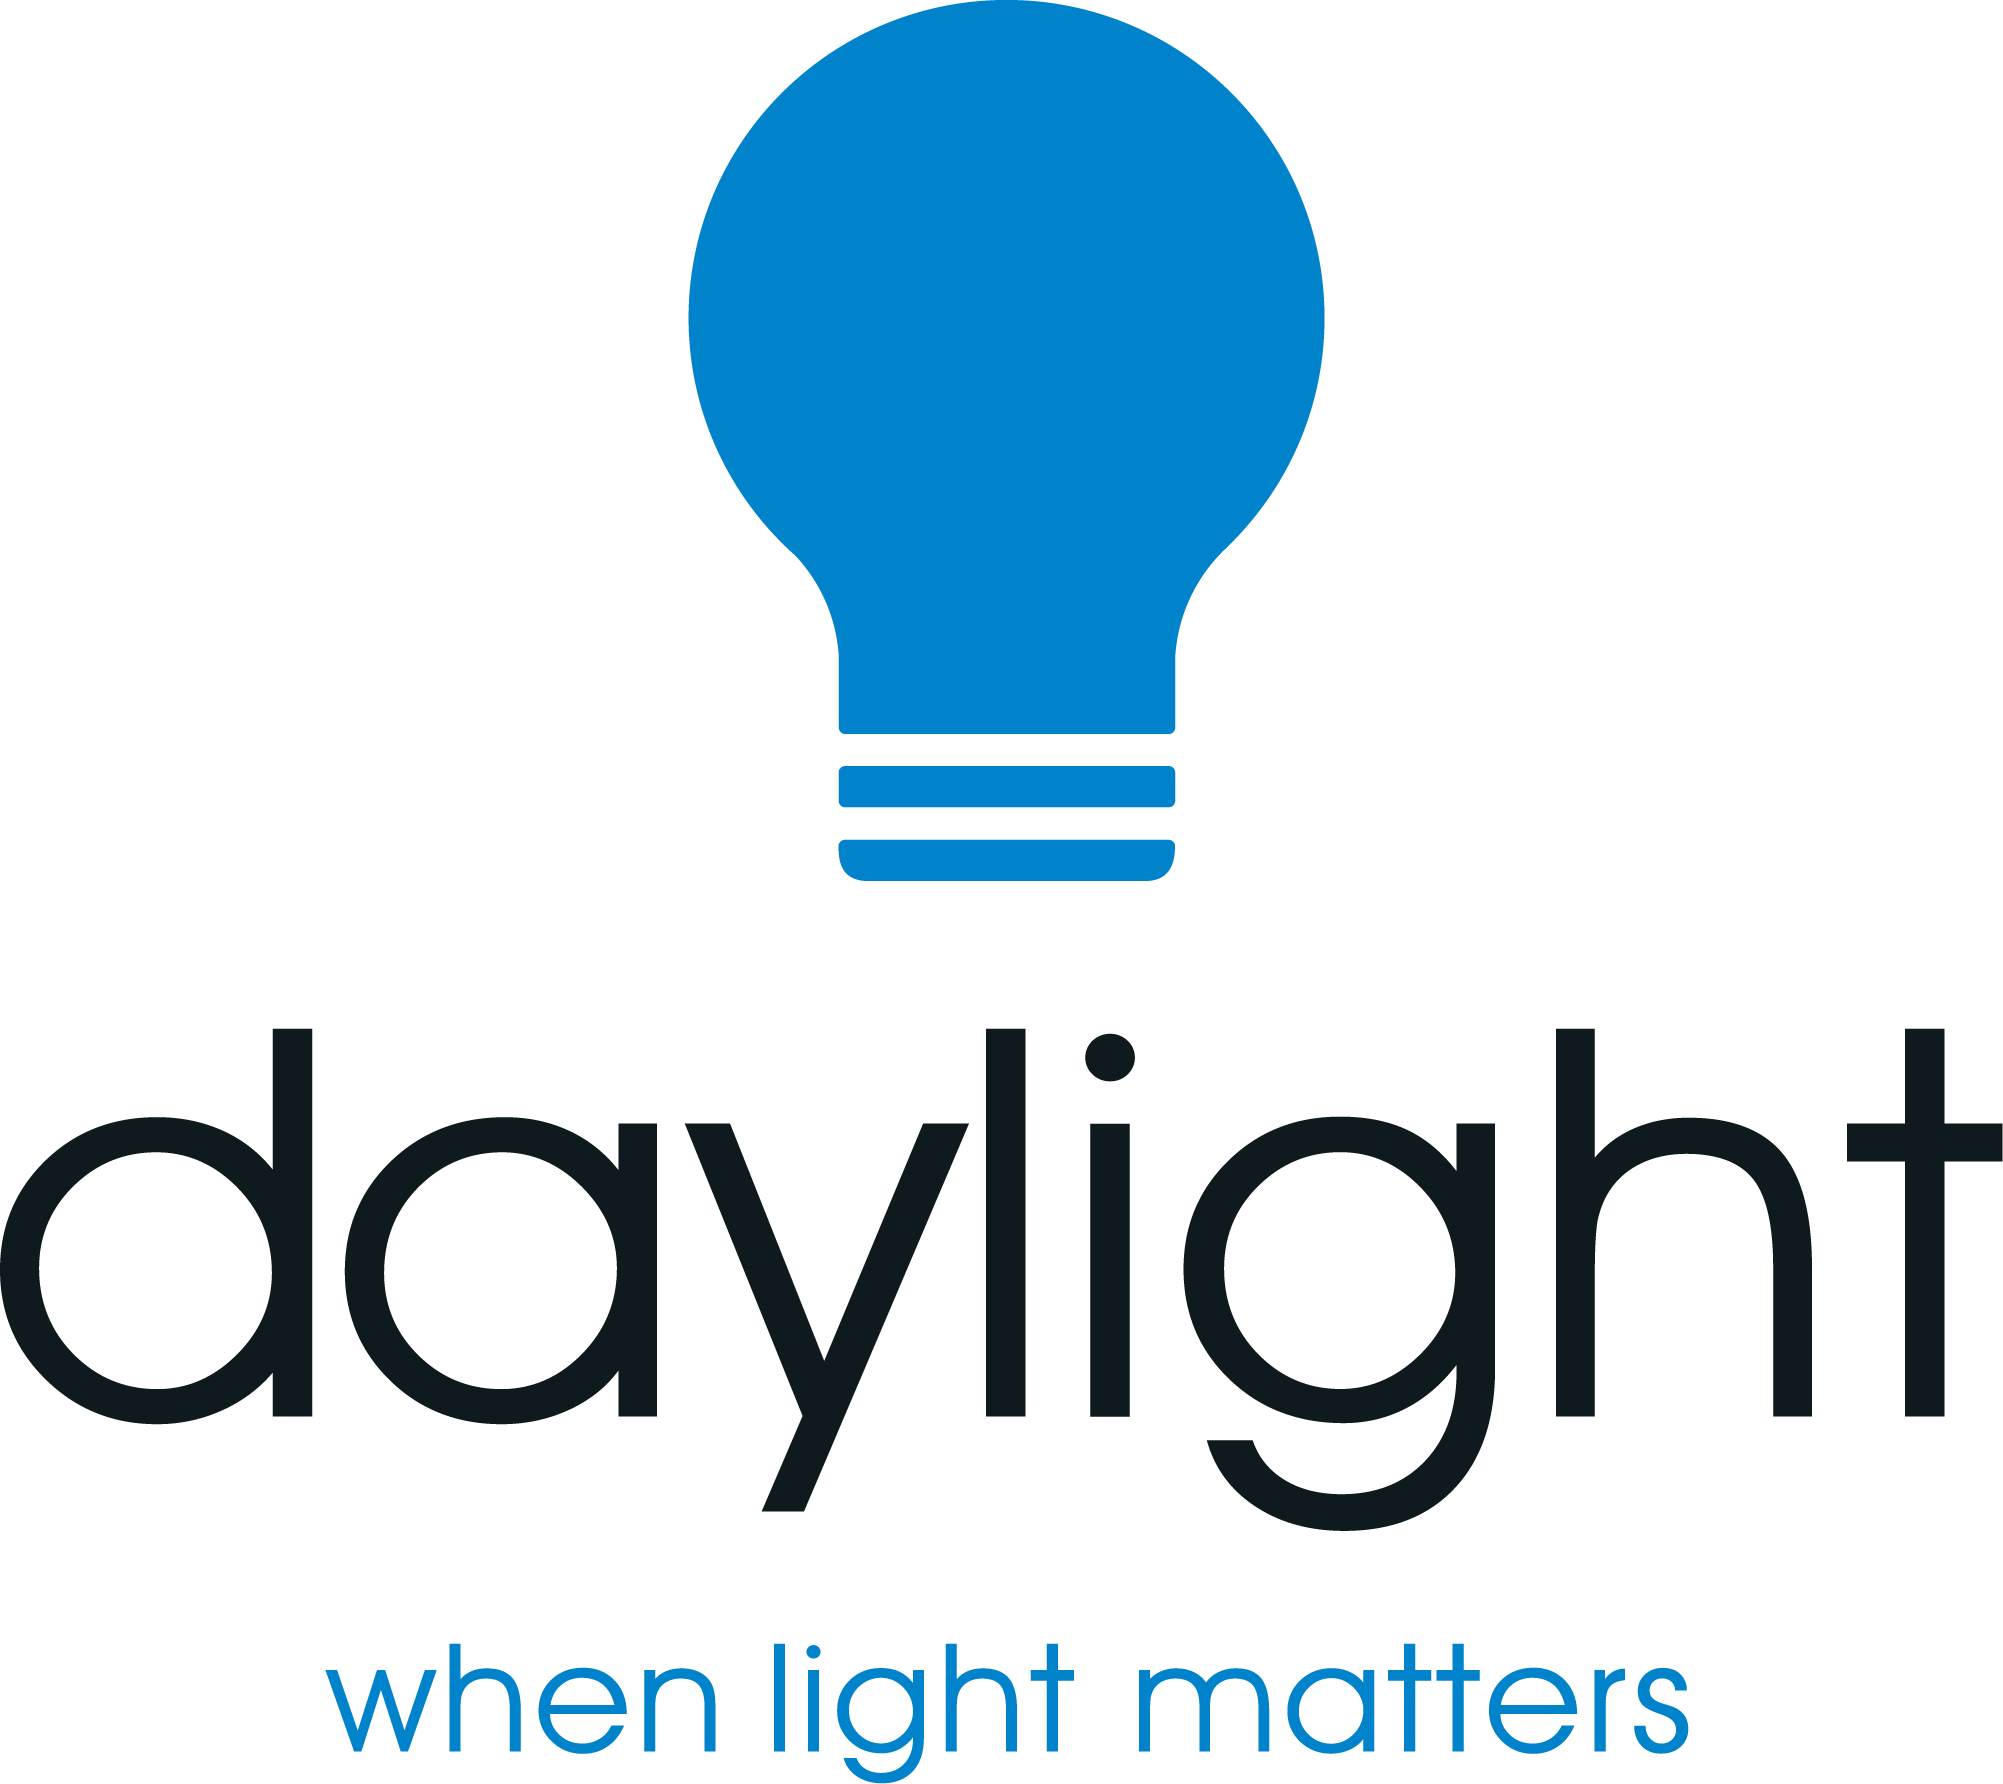 The Daylight Company